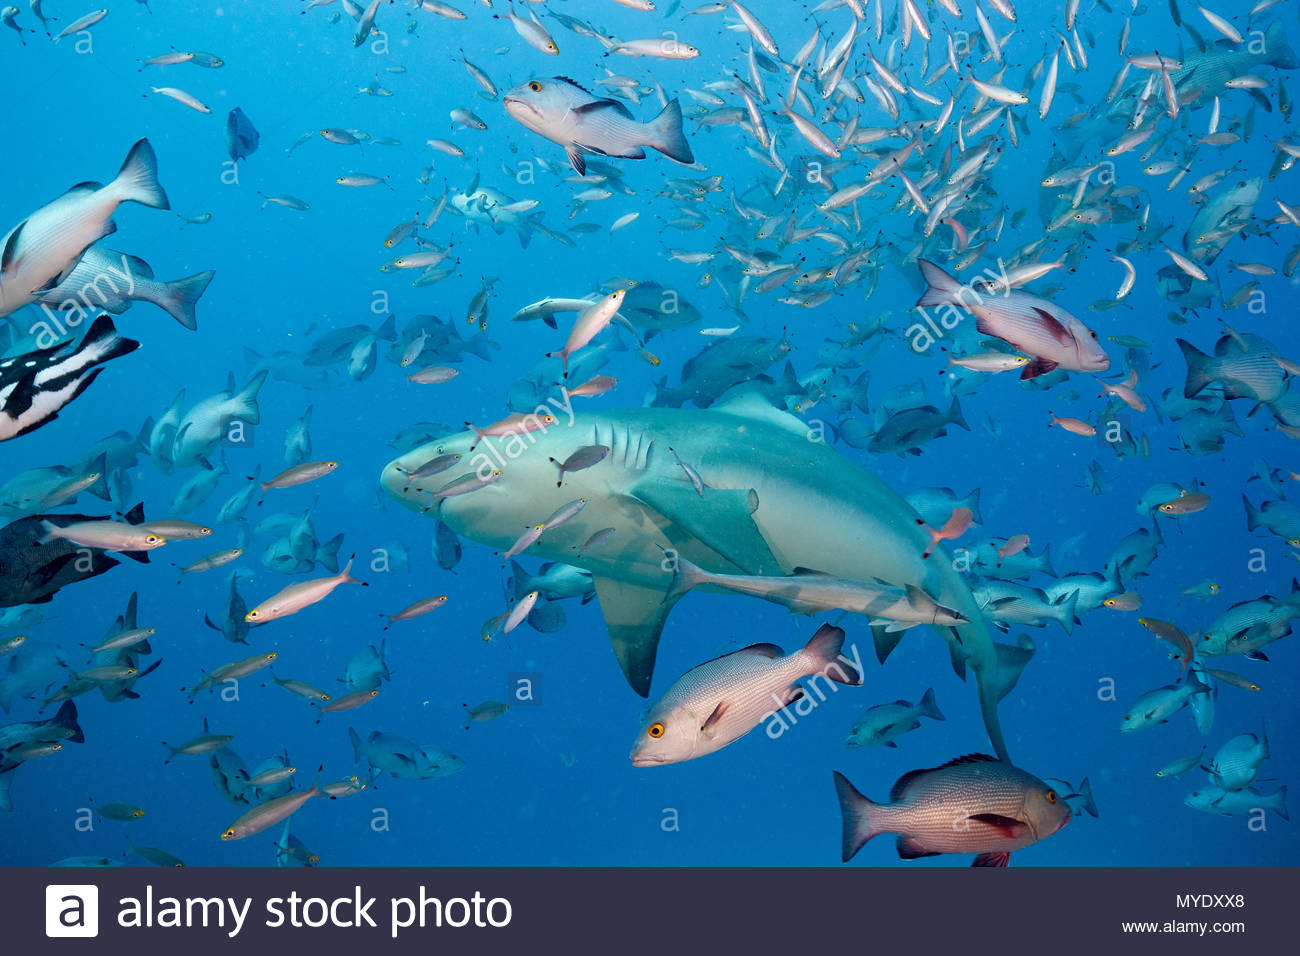 A bull shark, Carcharinus leucas, swims through a school of red snapper and fusiliers. Stock Photo